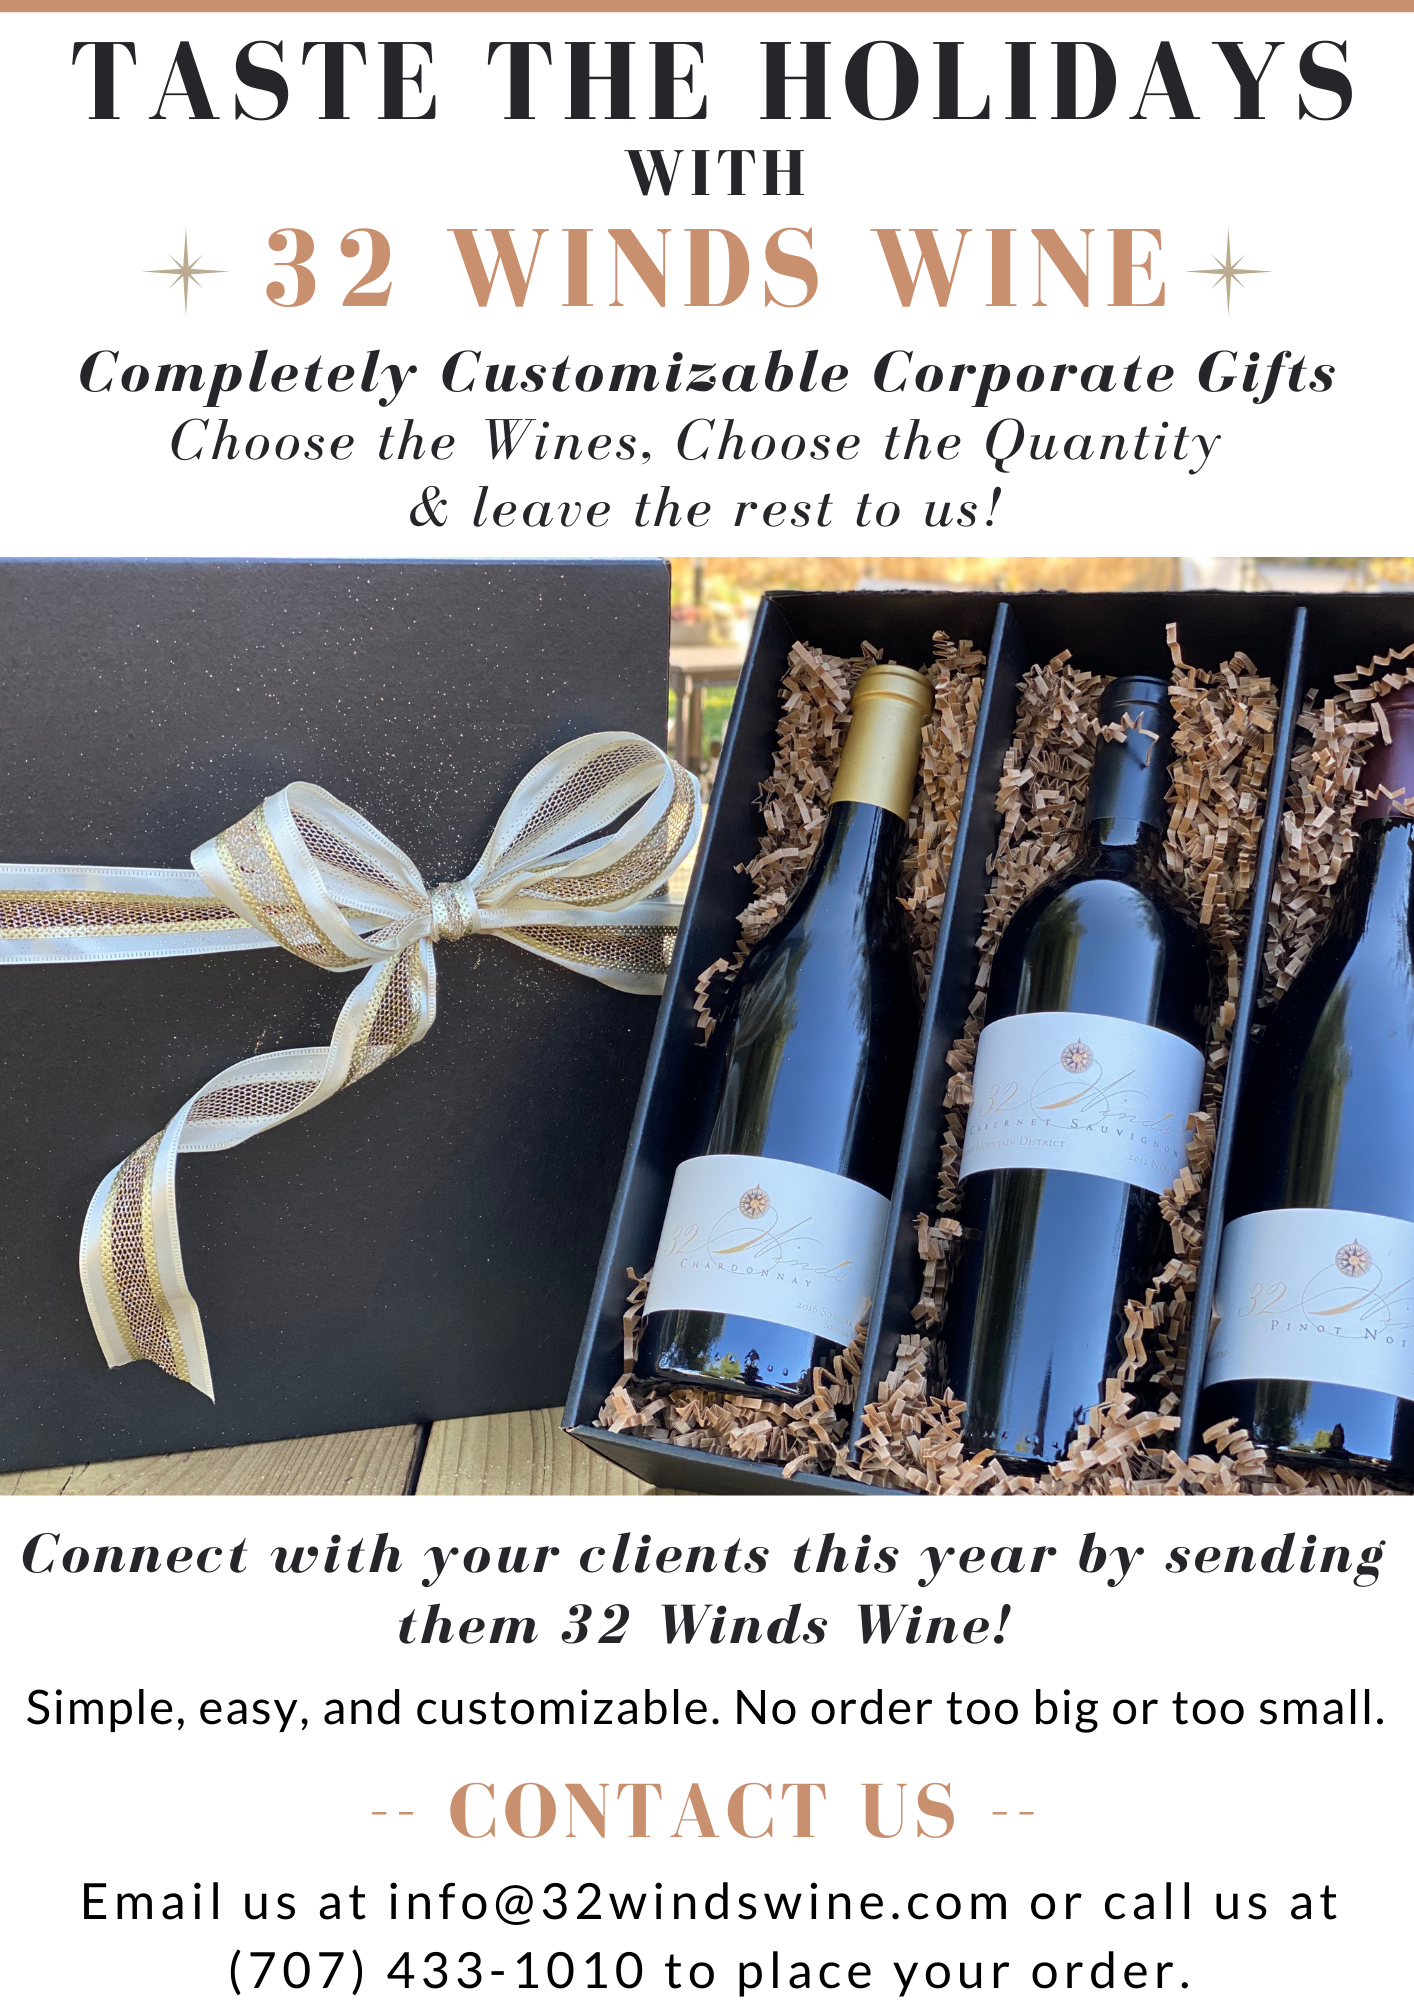 Customizable Corporate Gifts